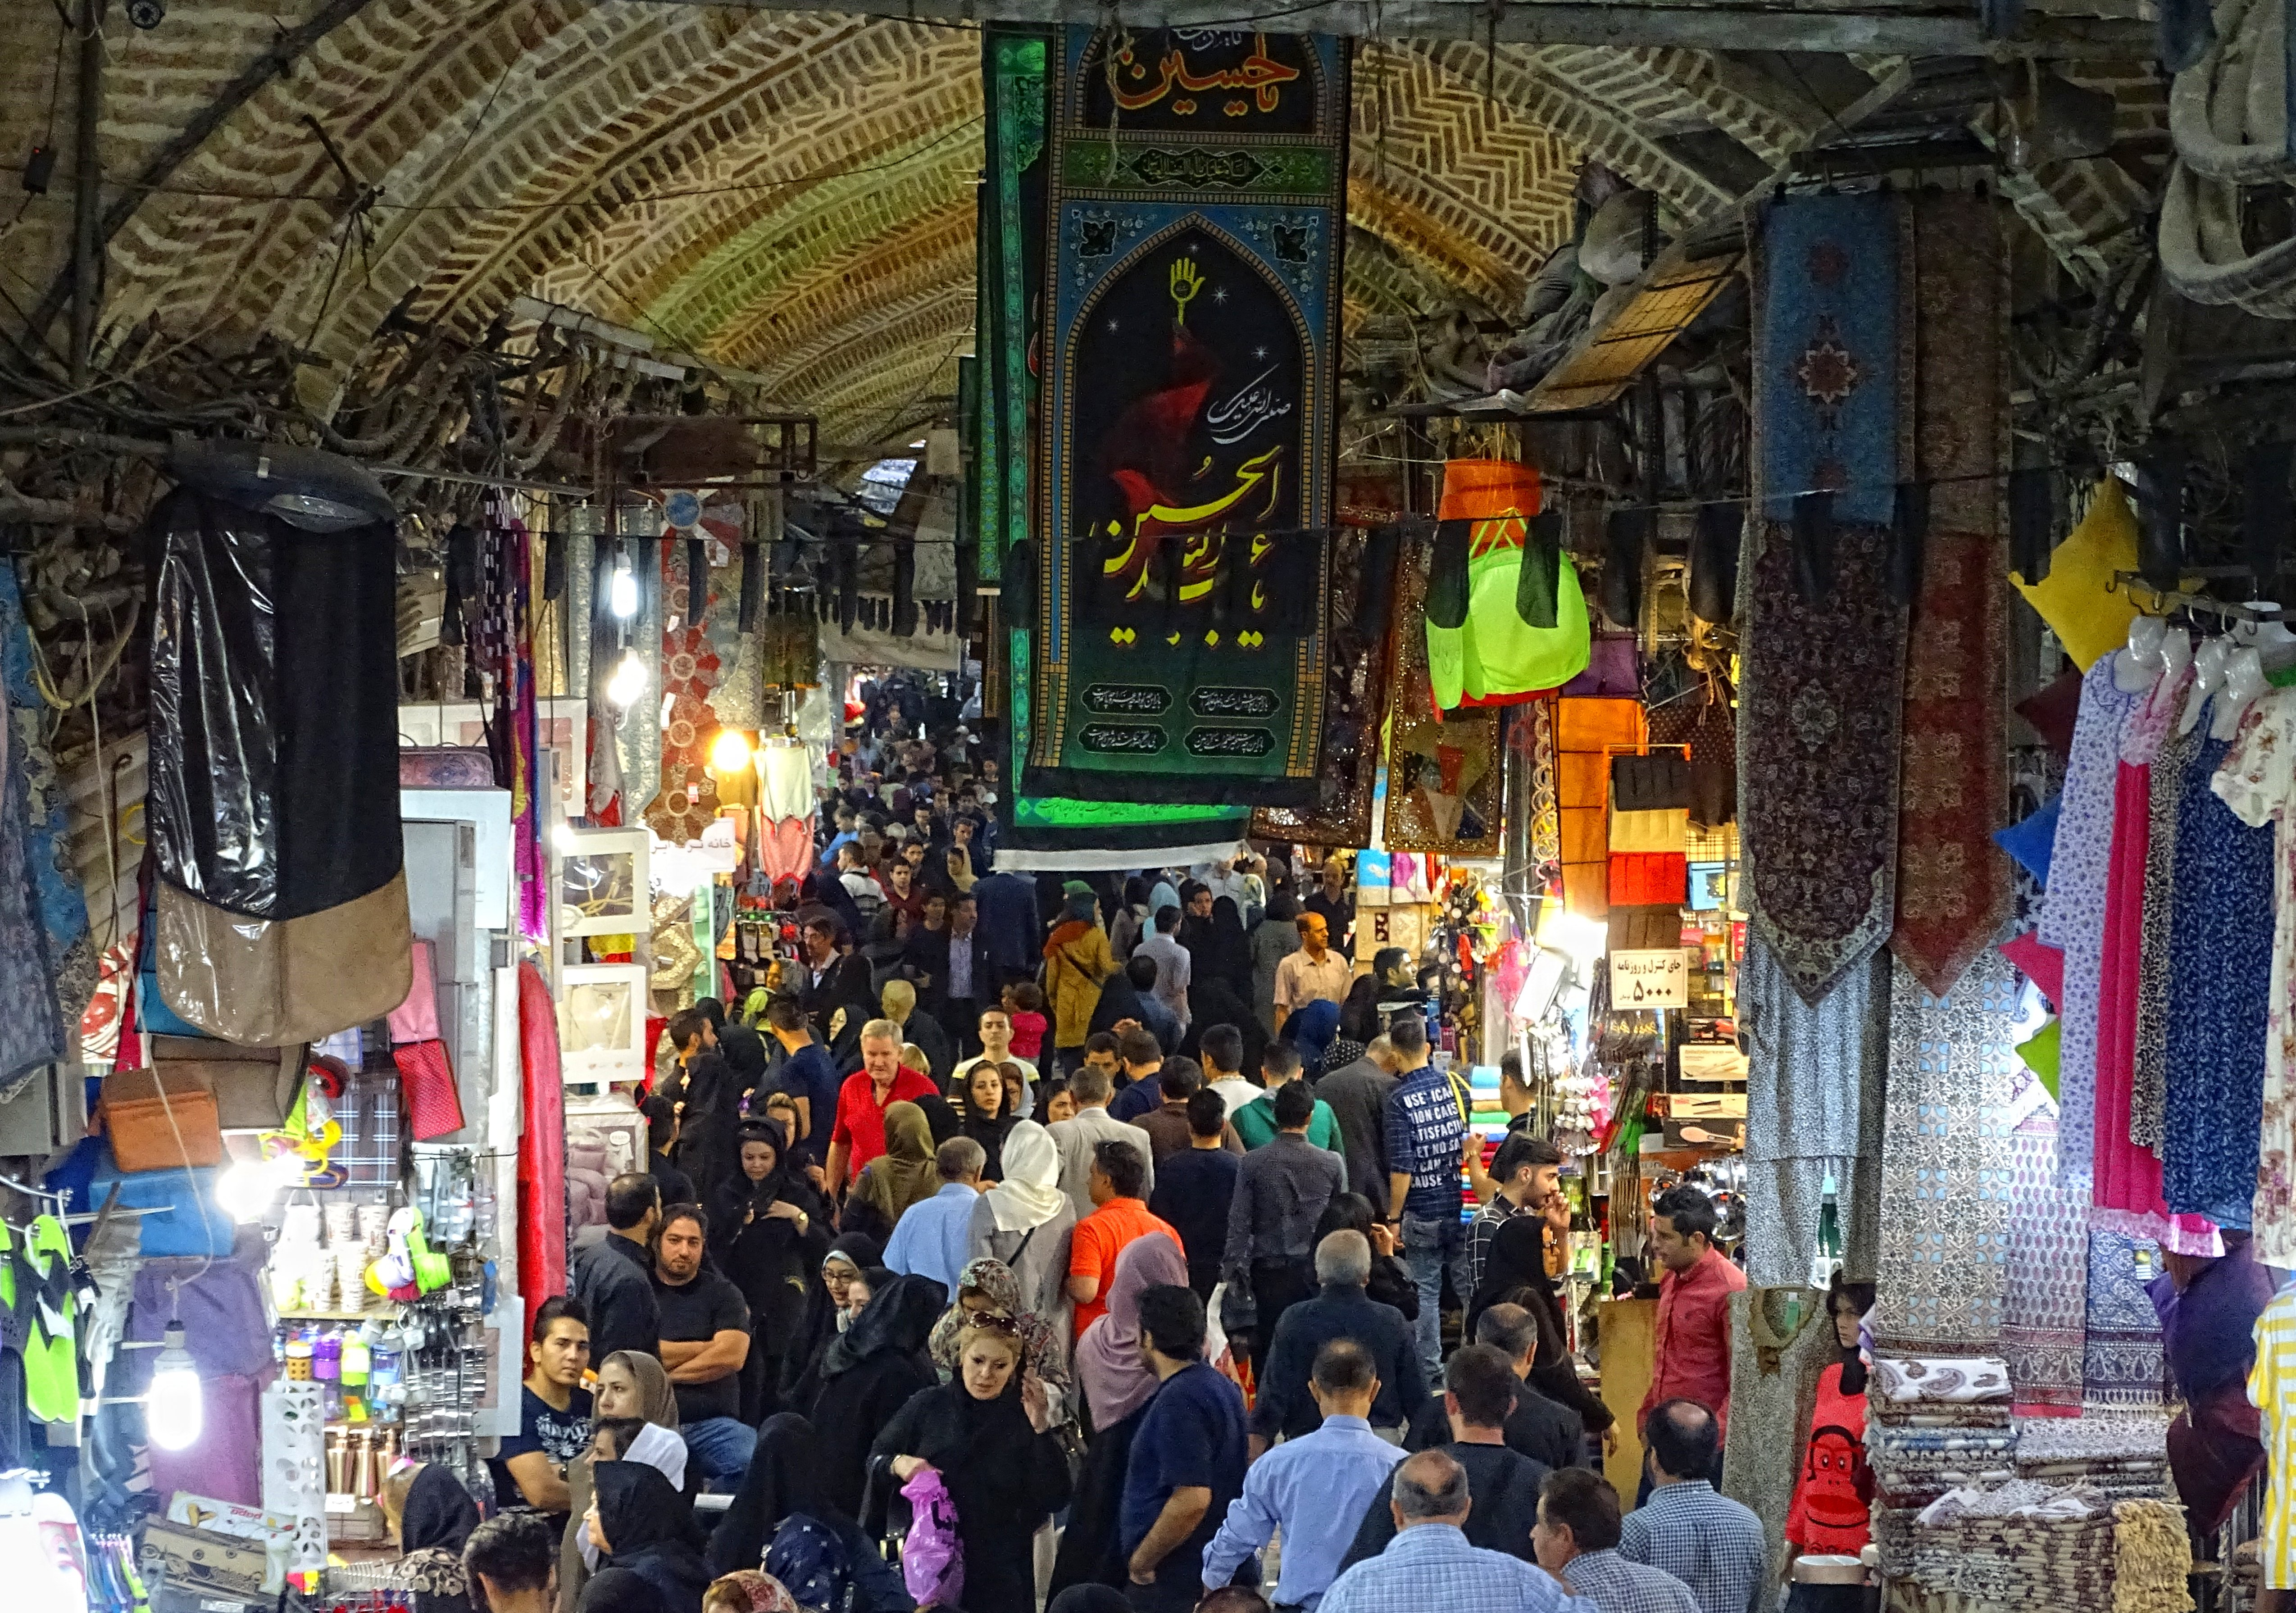 File:Tehran Bazaar Entrance 2016.jpg - Wikimedia Commons